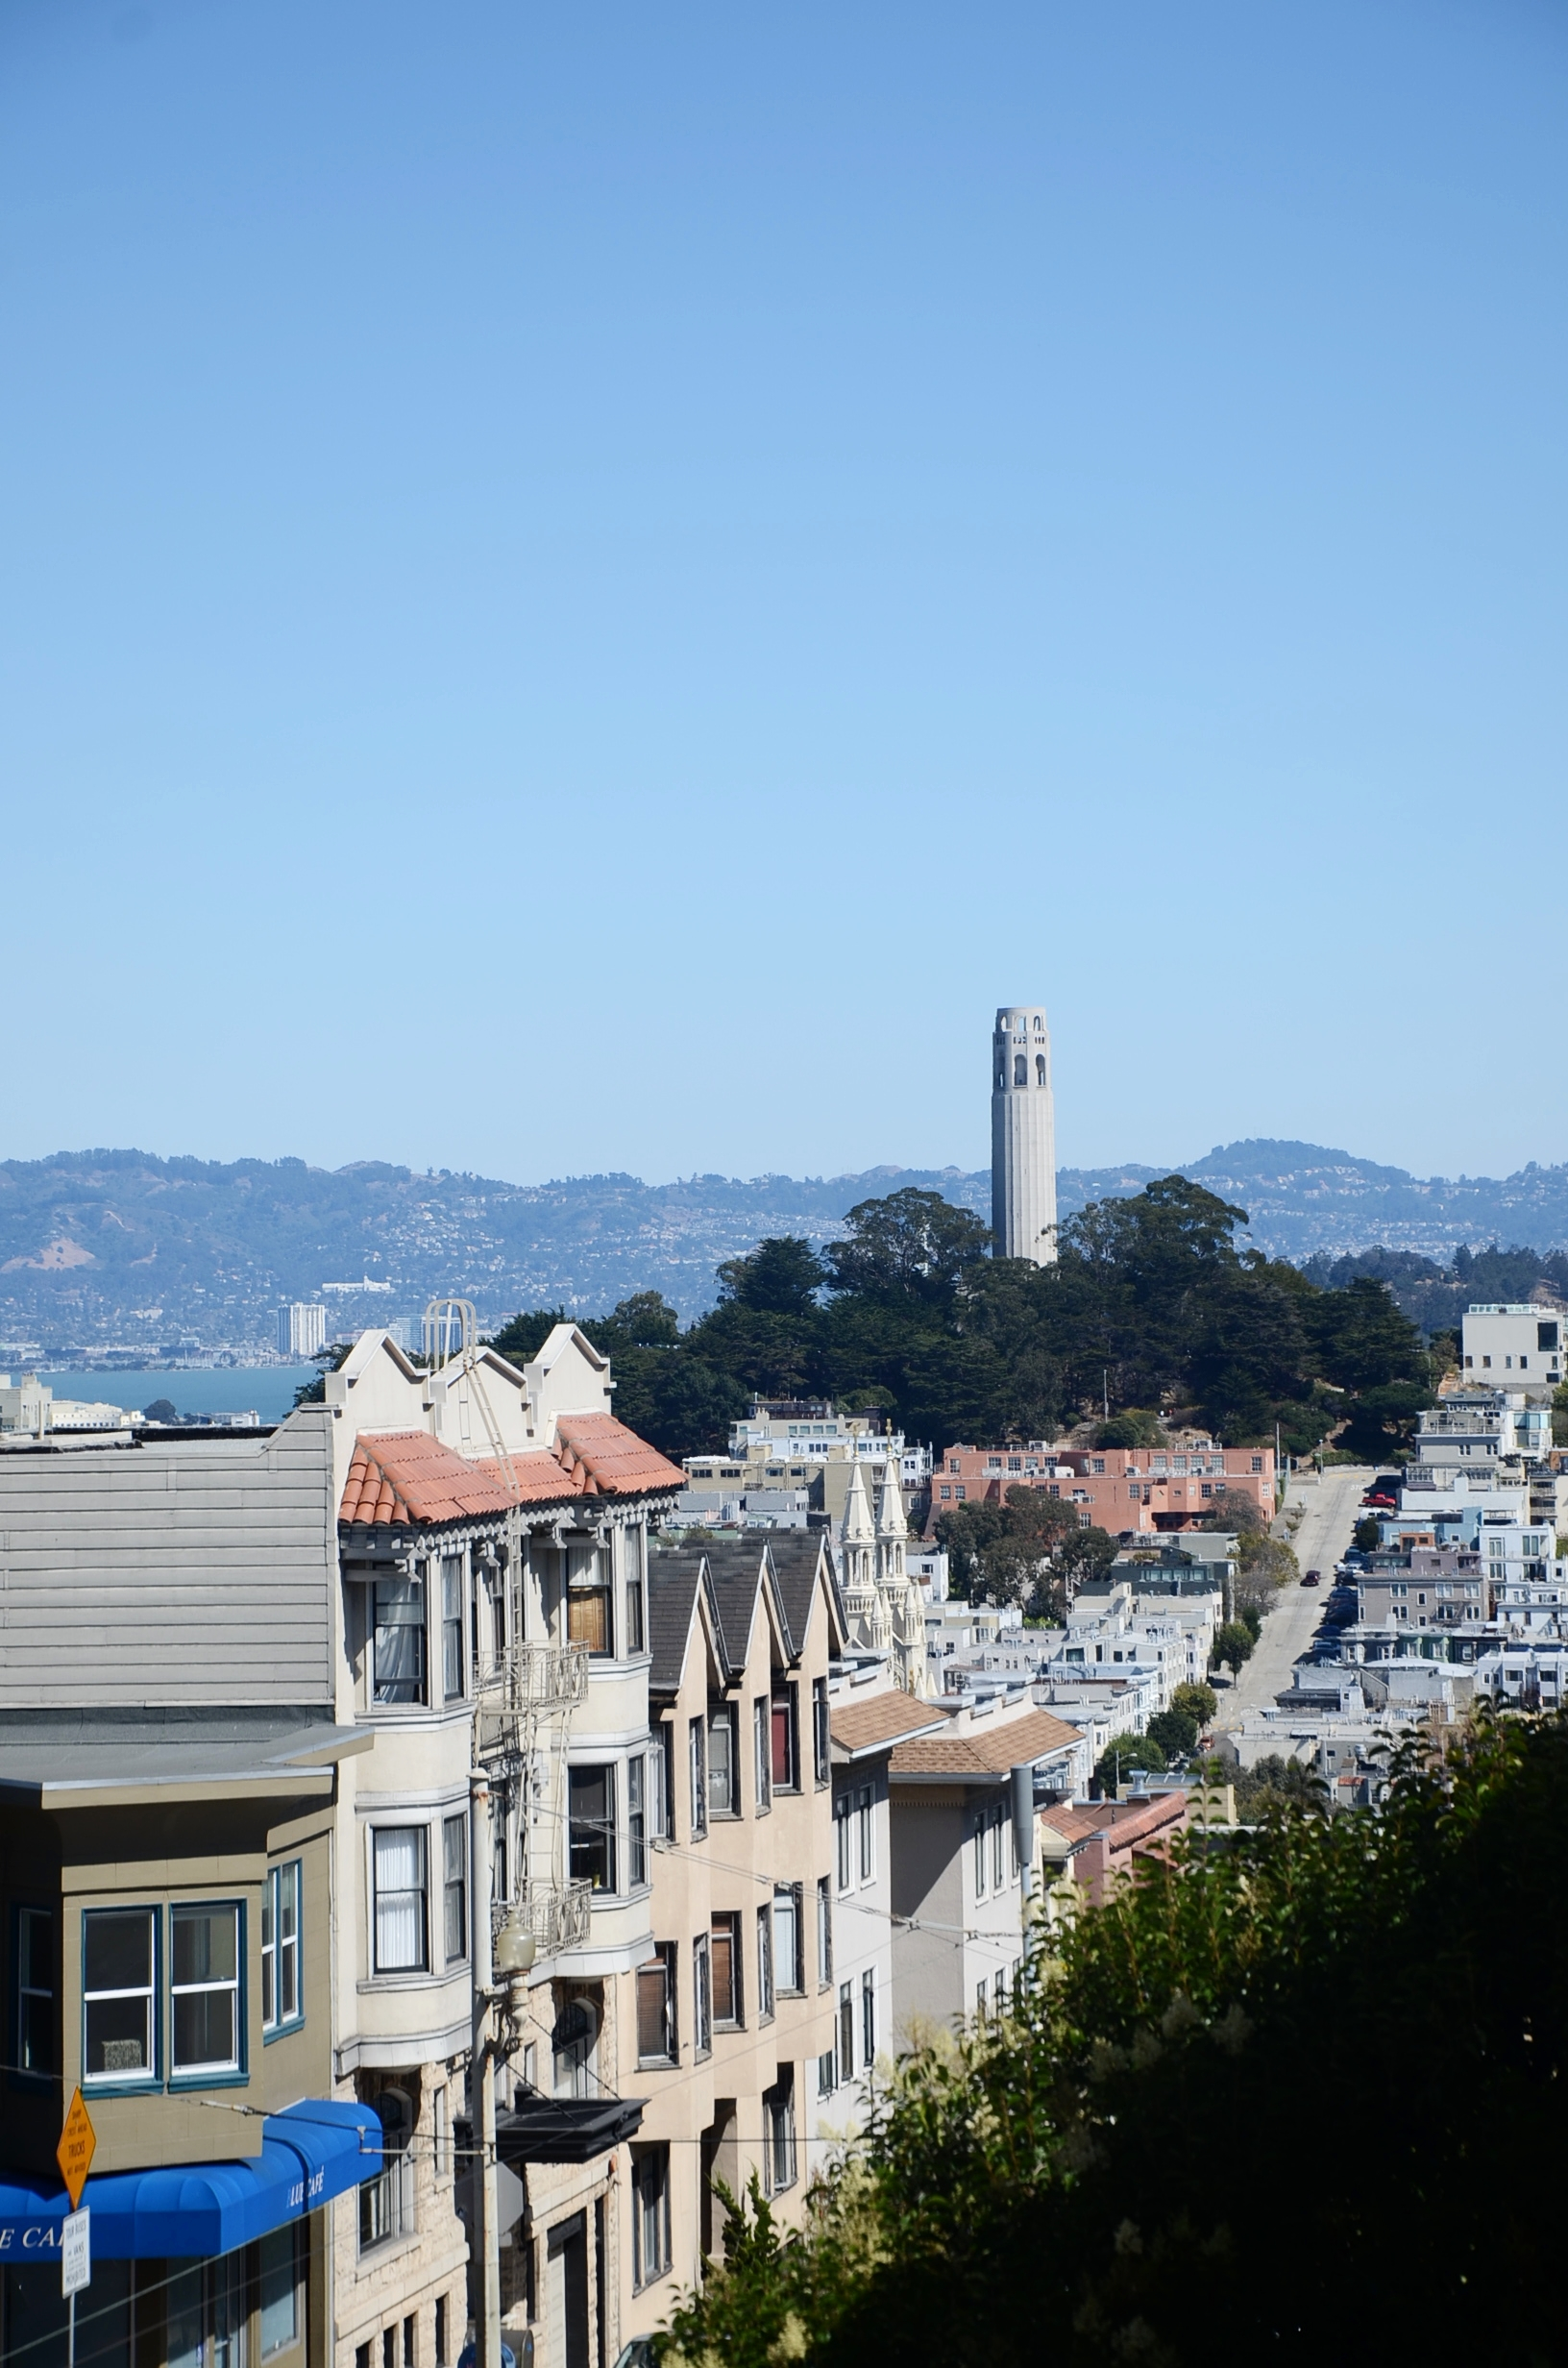 Coit Tower to the right